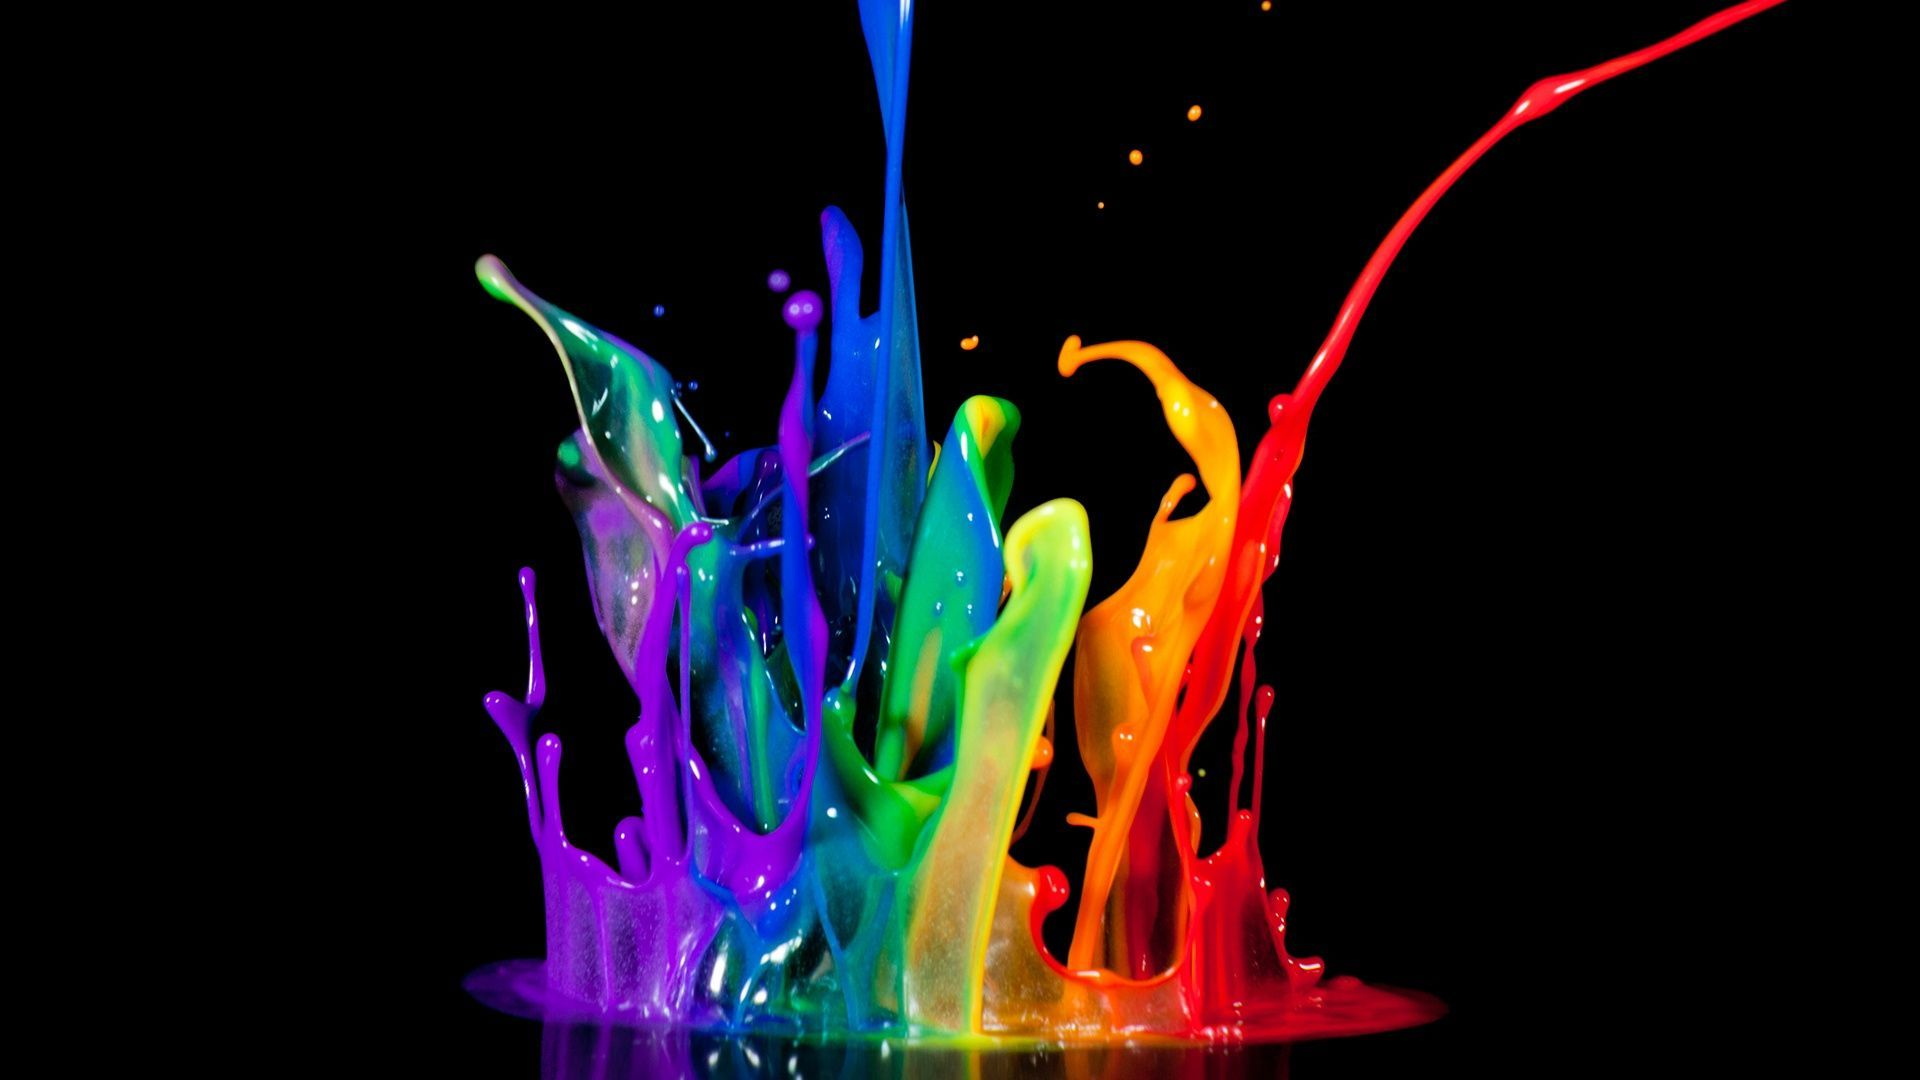 Abstract Colorful HD Wallpaper Fondo de pantalla colorido HD gratis | Colorido